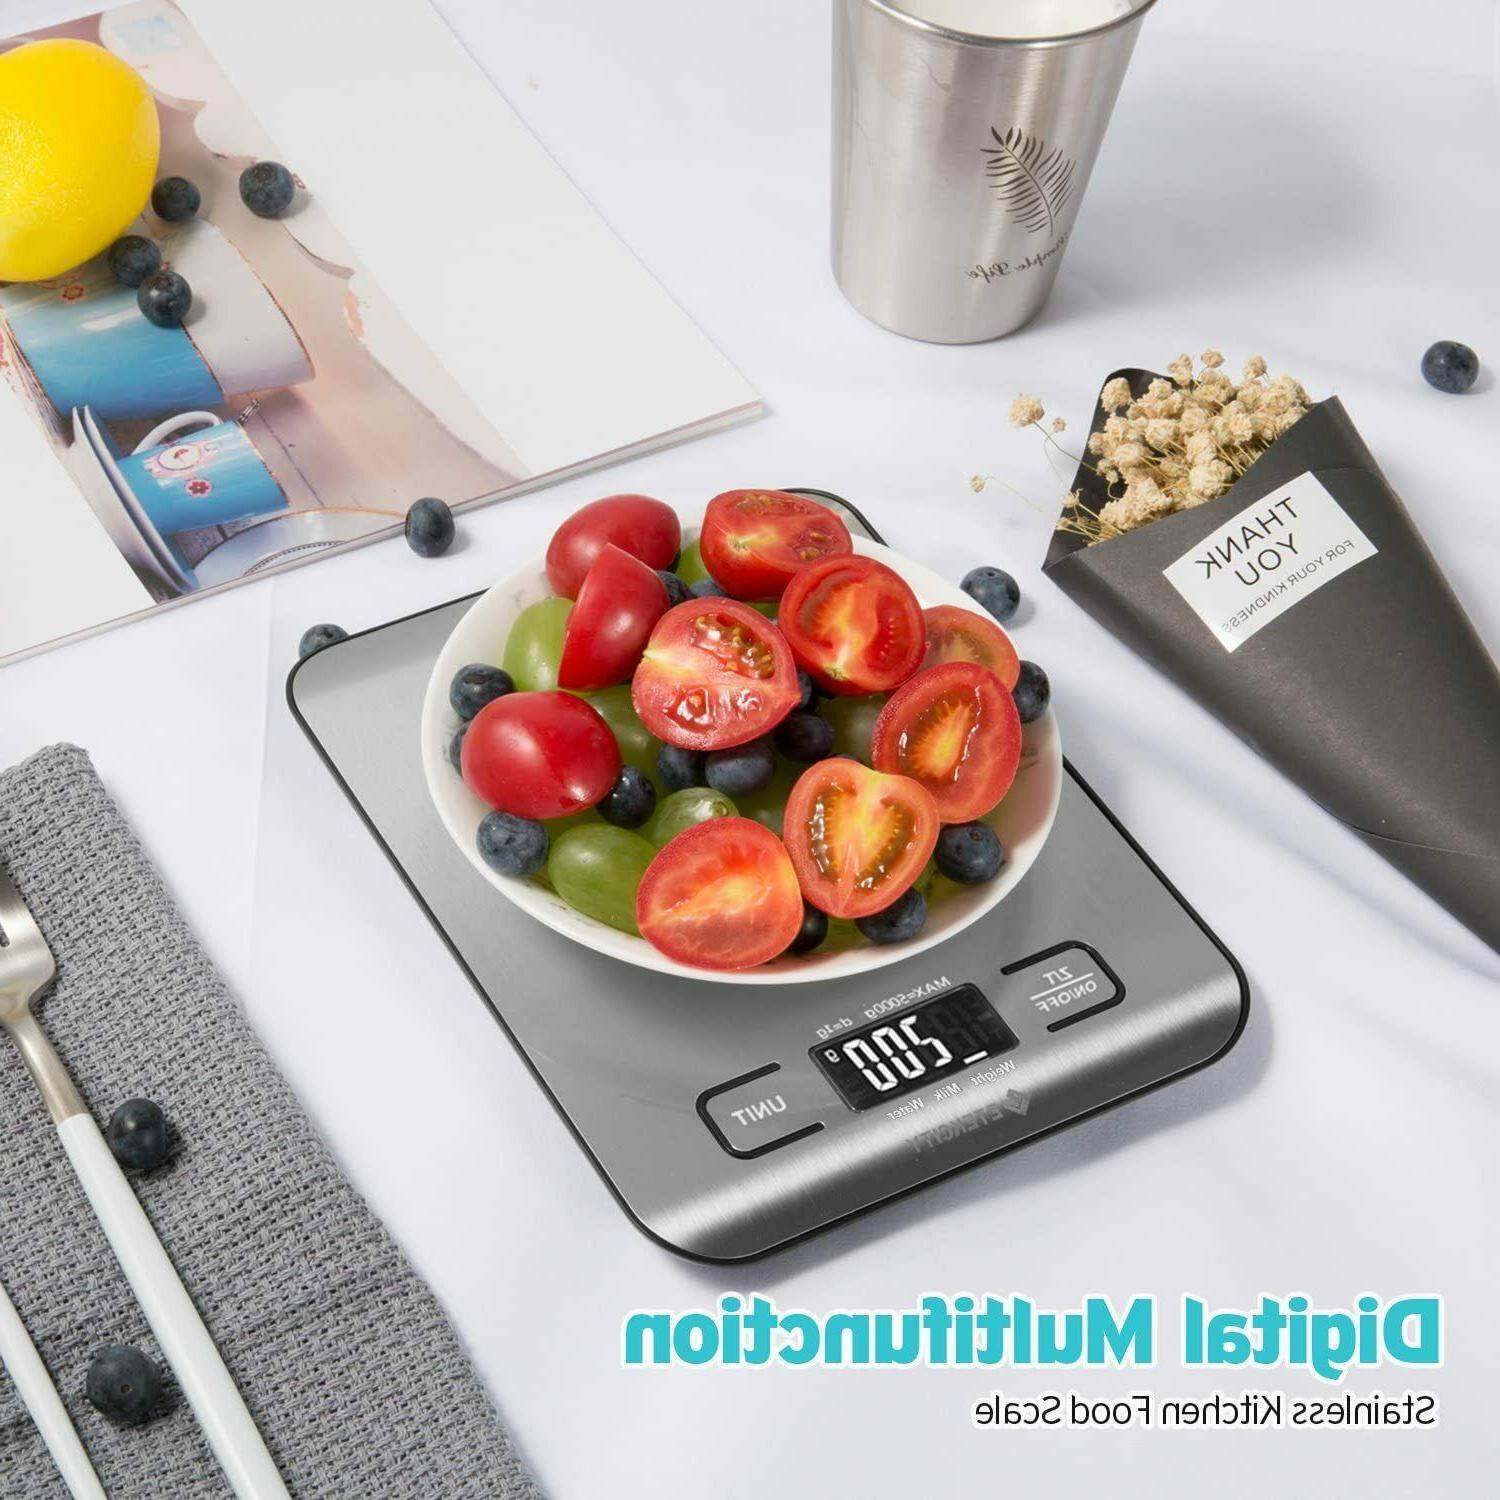 Kitchen Electronic Weighing Scale Gram Accurate